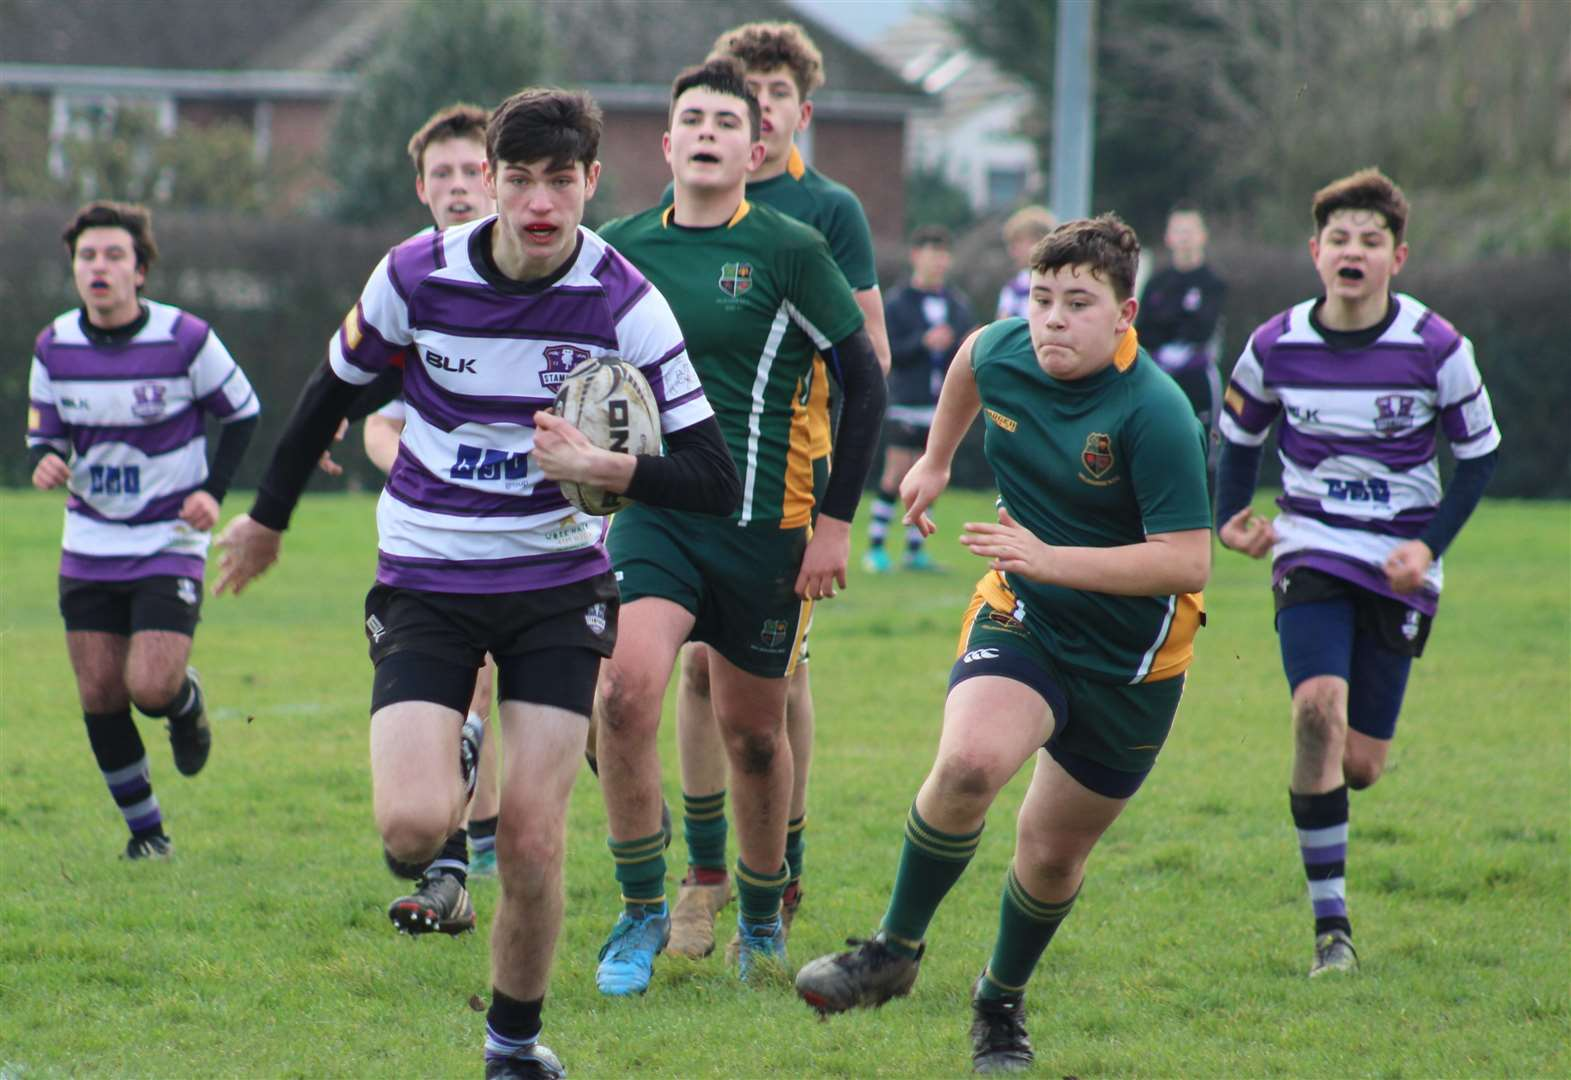 RUGBY UNION: Hard-fought success for Stamford against strong visiting side